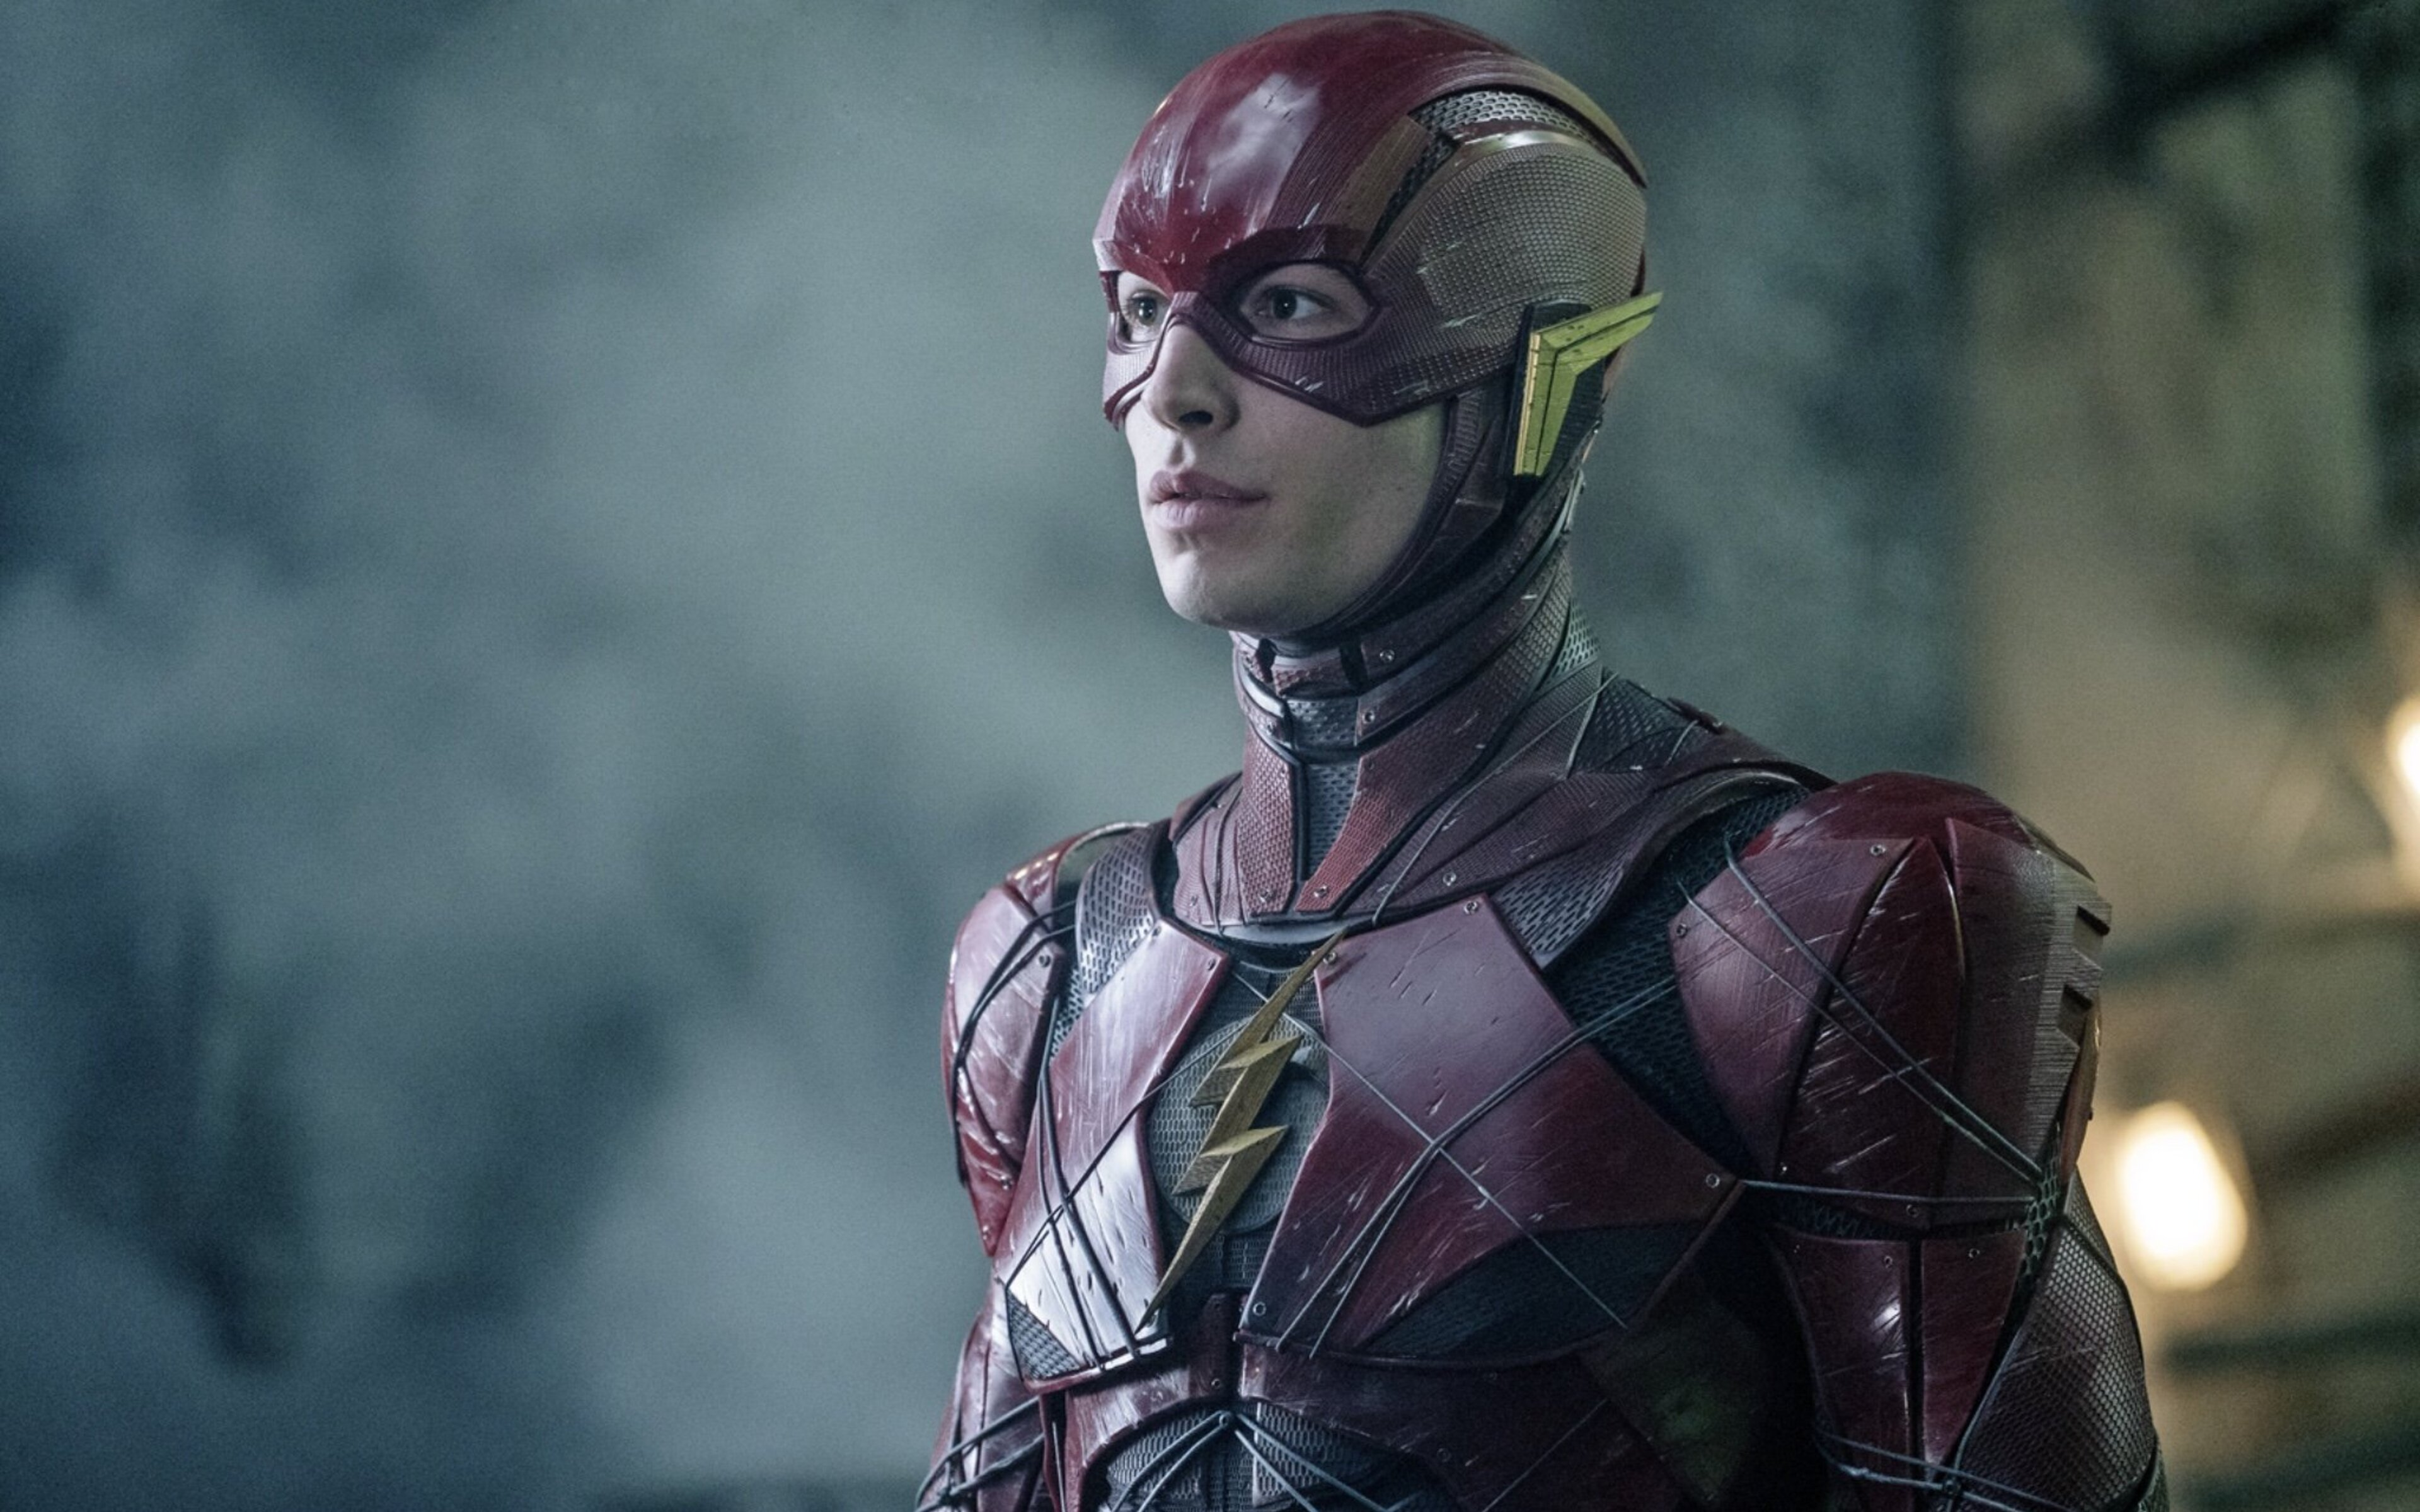 flash-justice-league-if.jpg